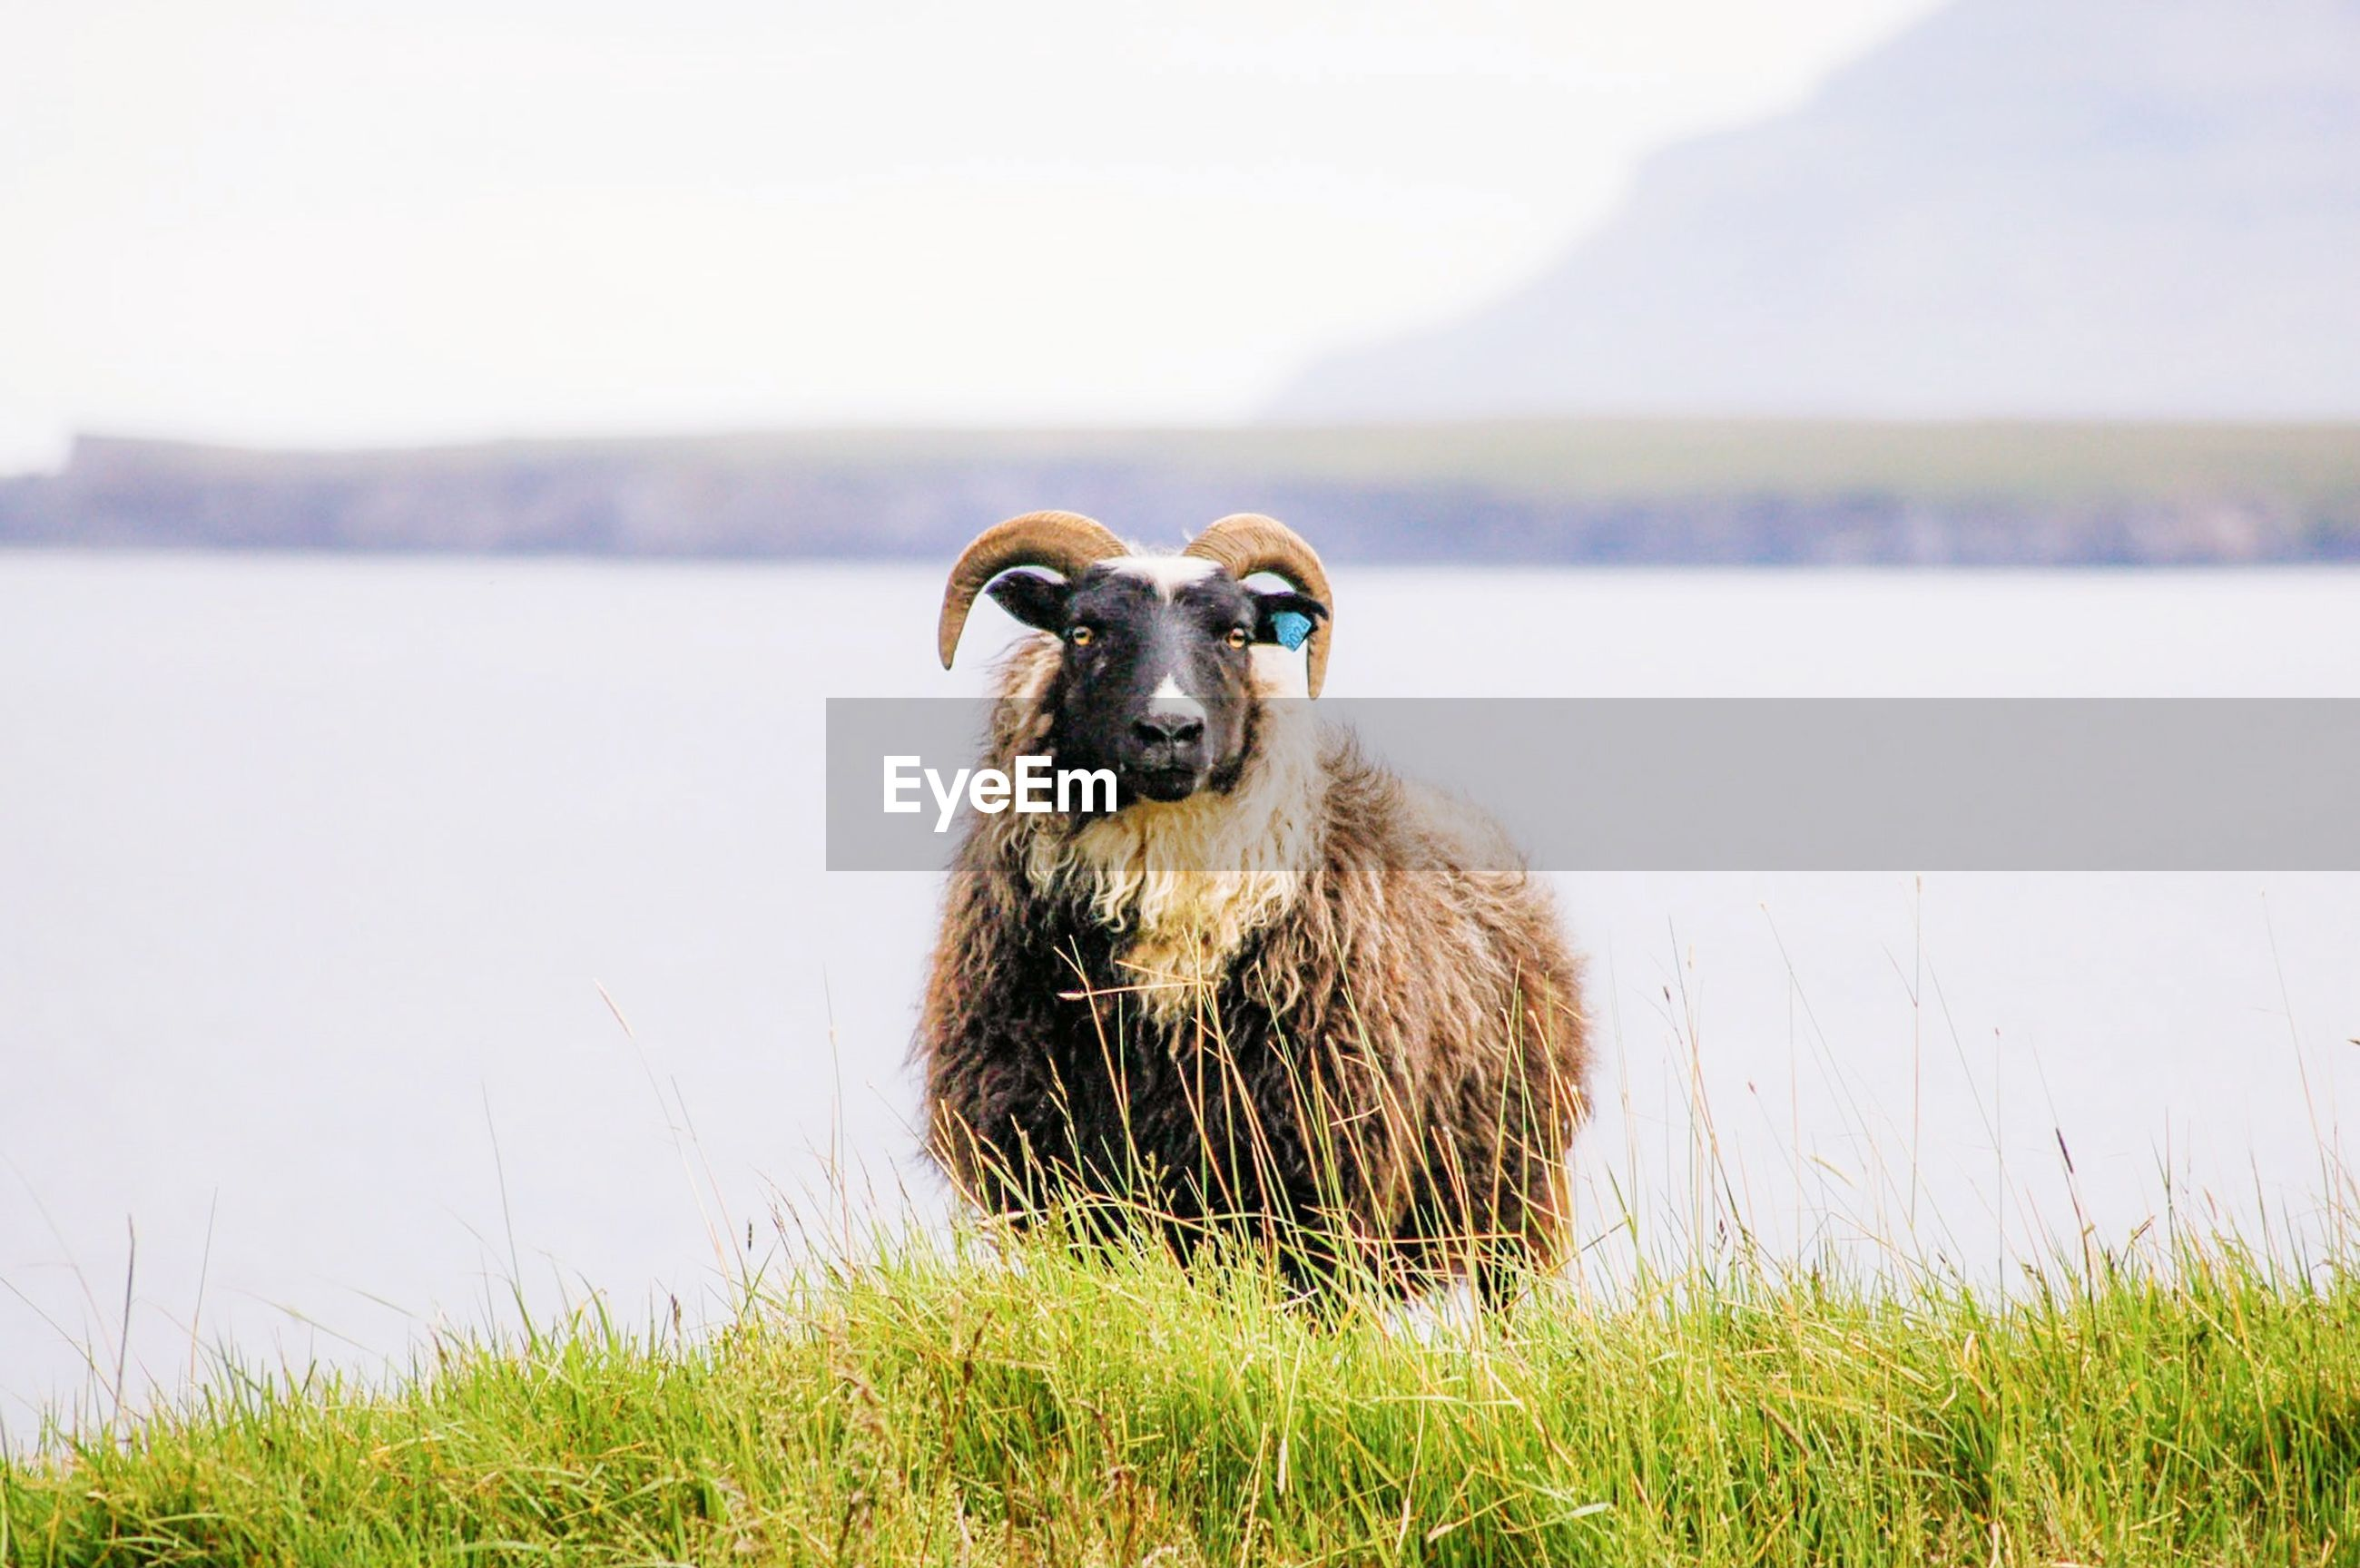 Portrait of sheep on grass against lake and sky